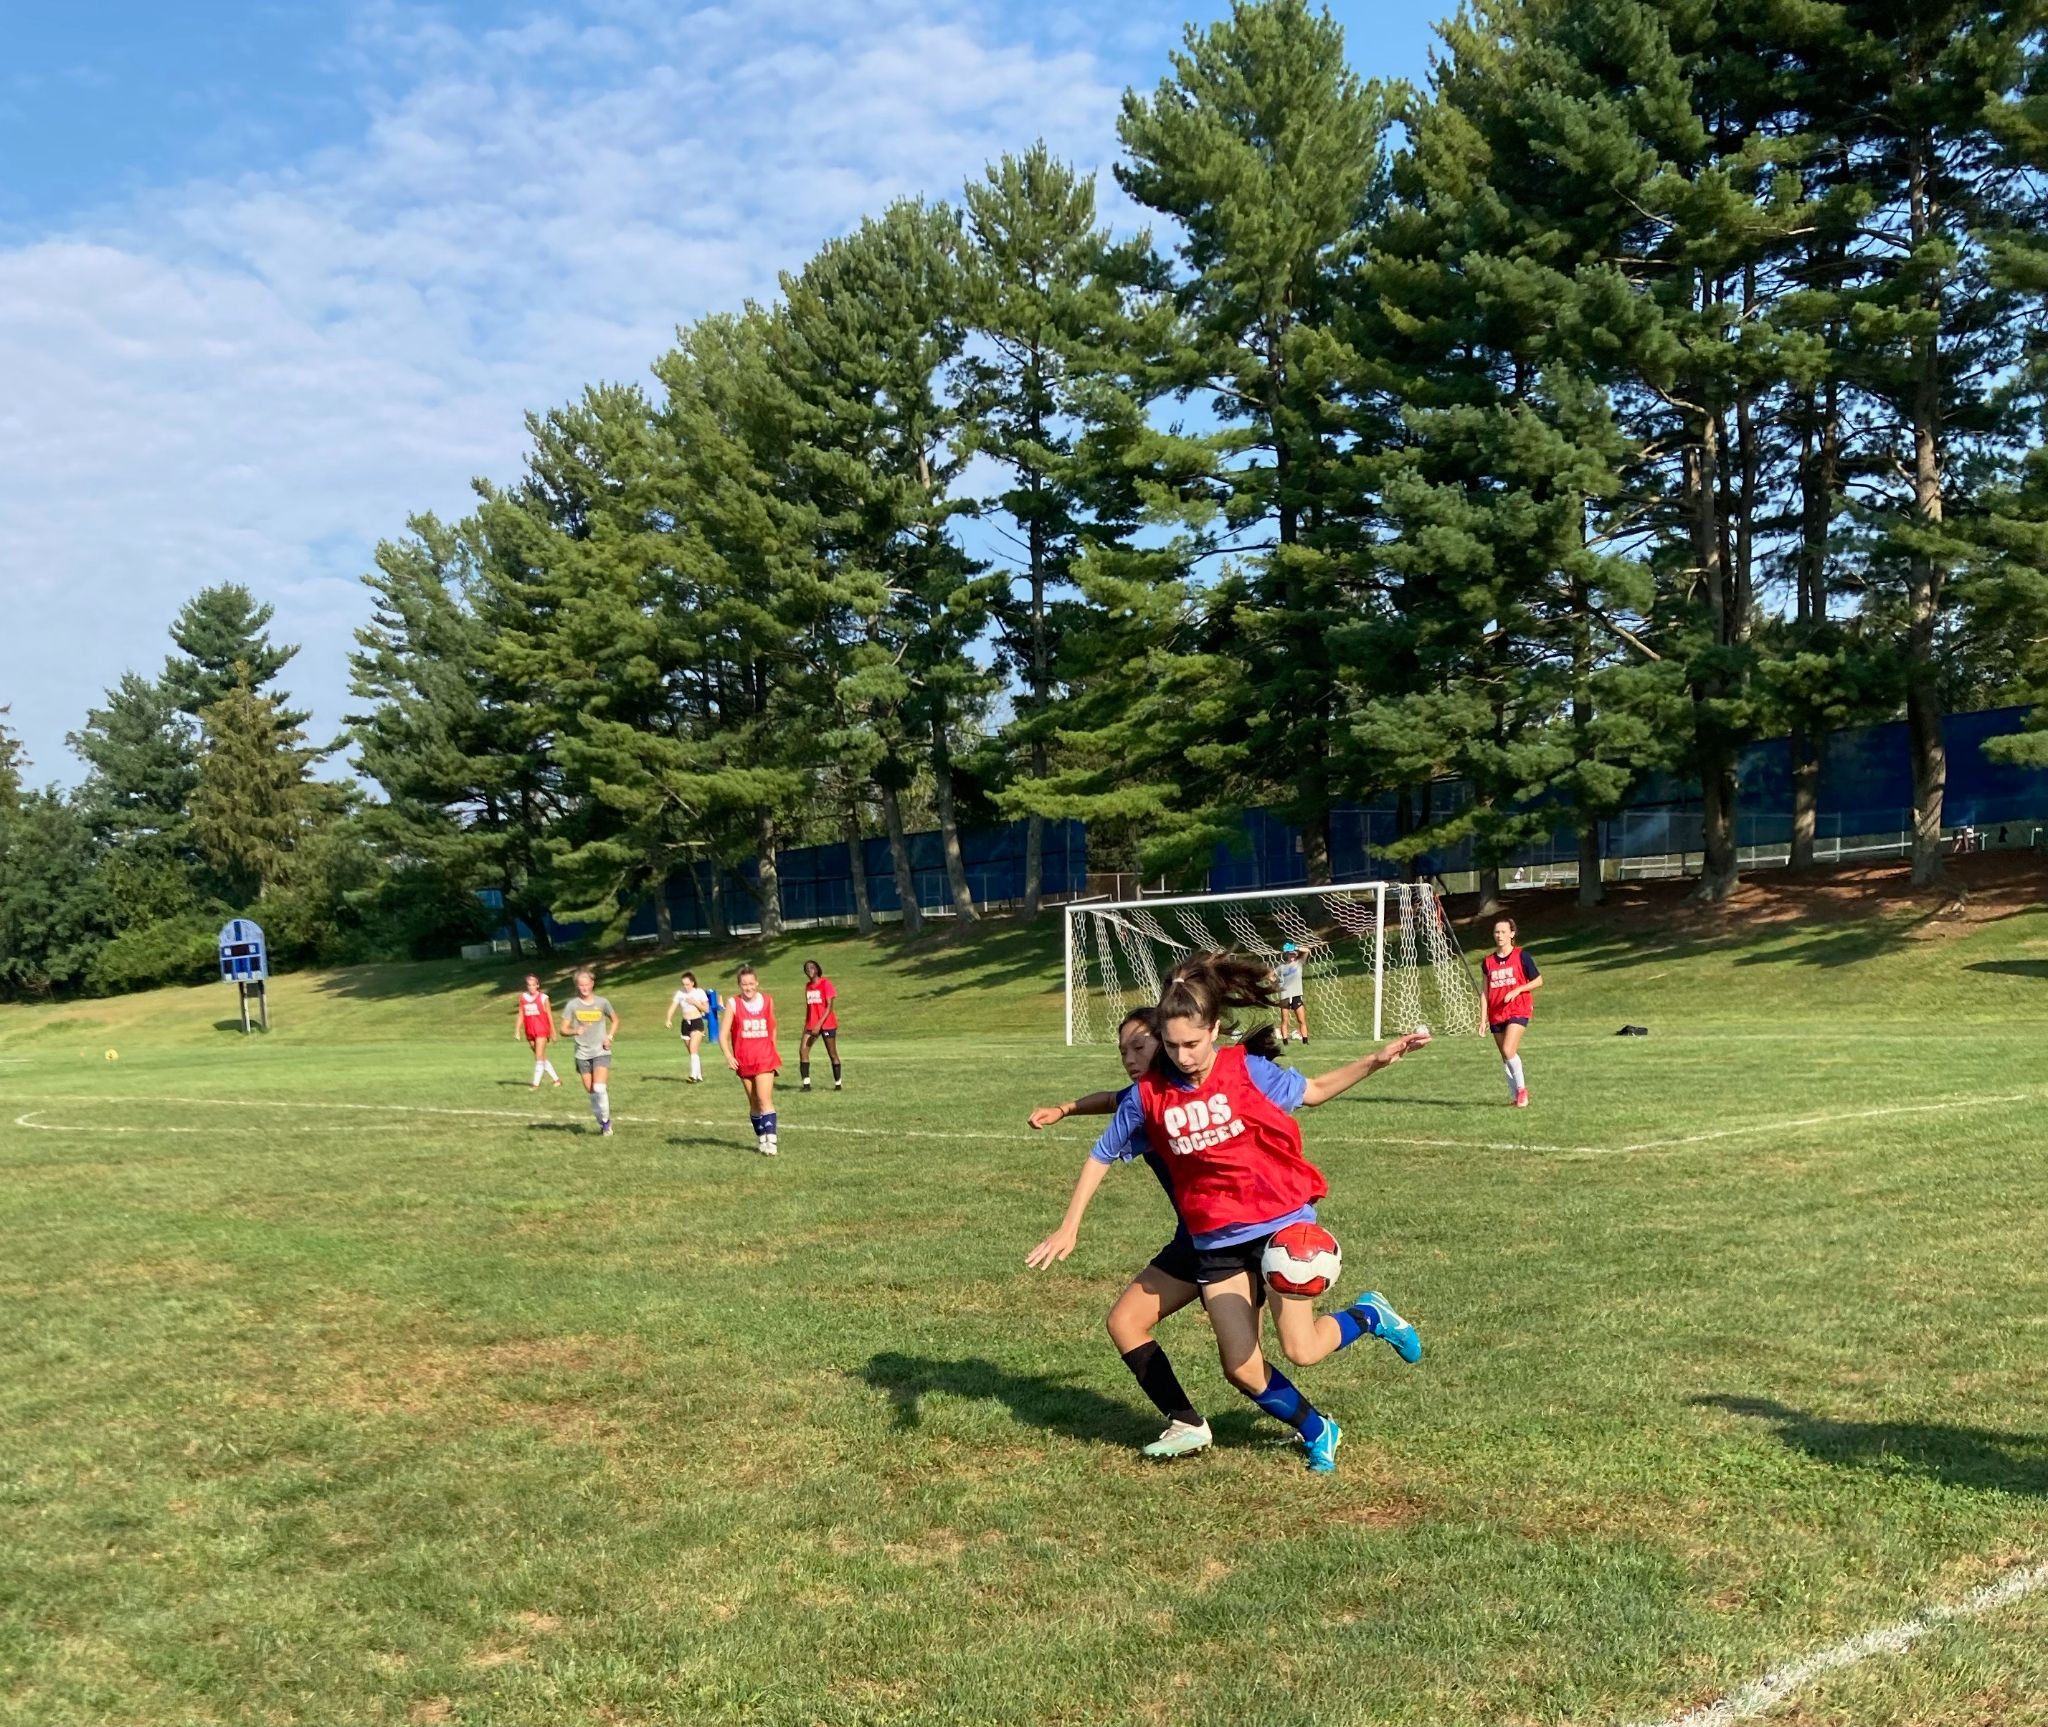 The girls soccer team engages in a scrimmage